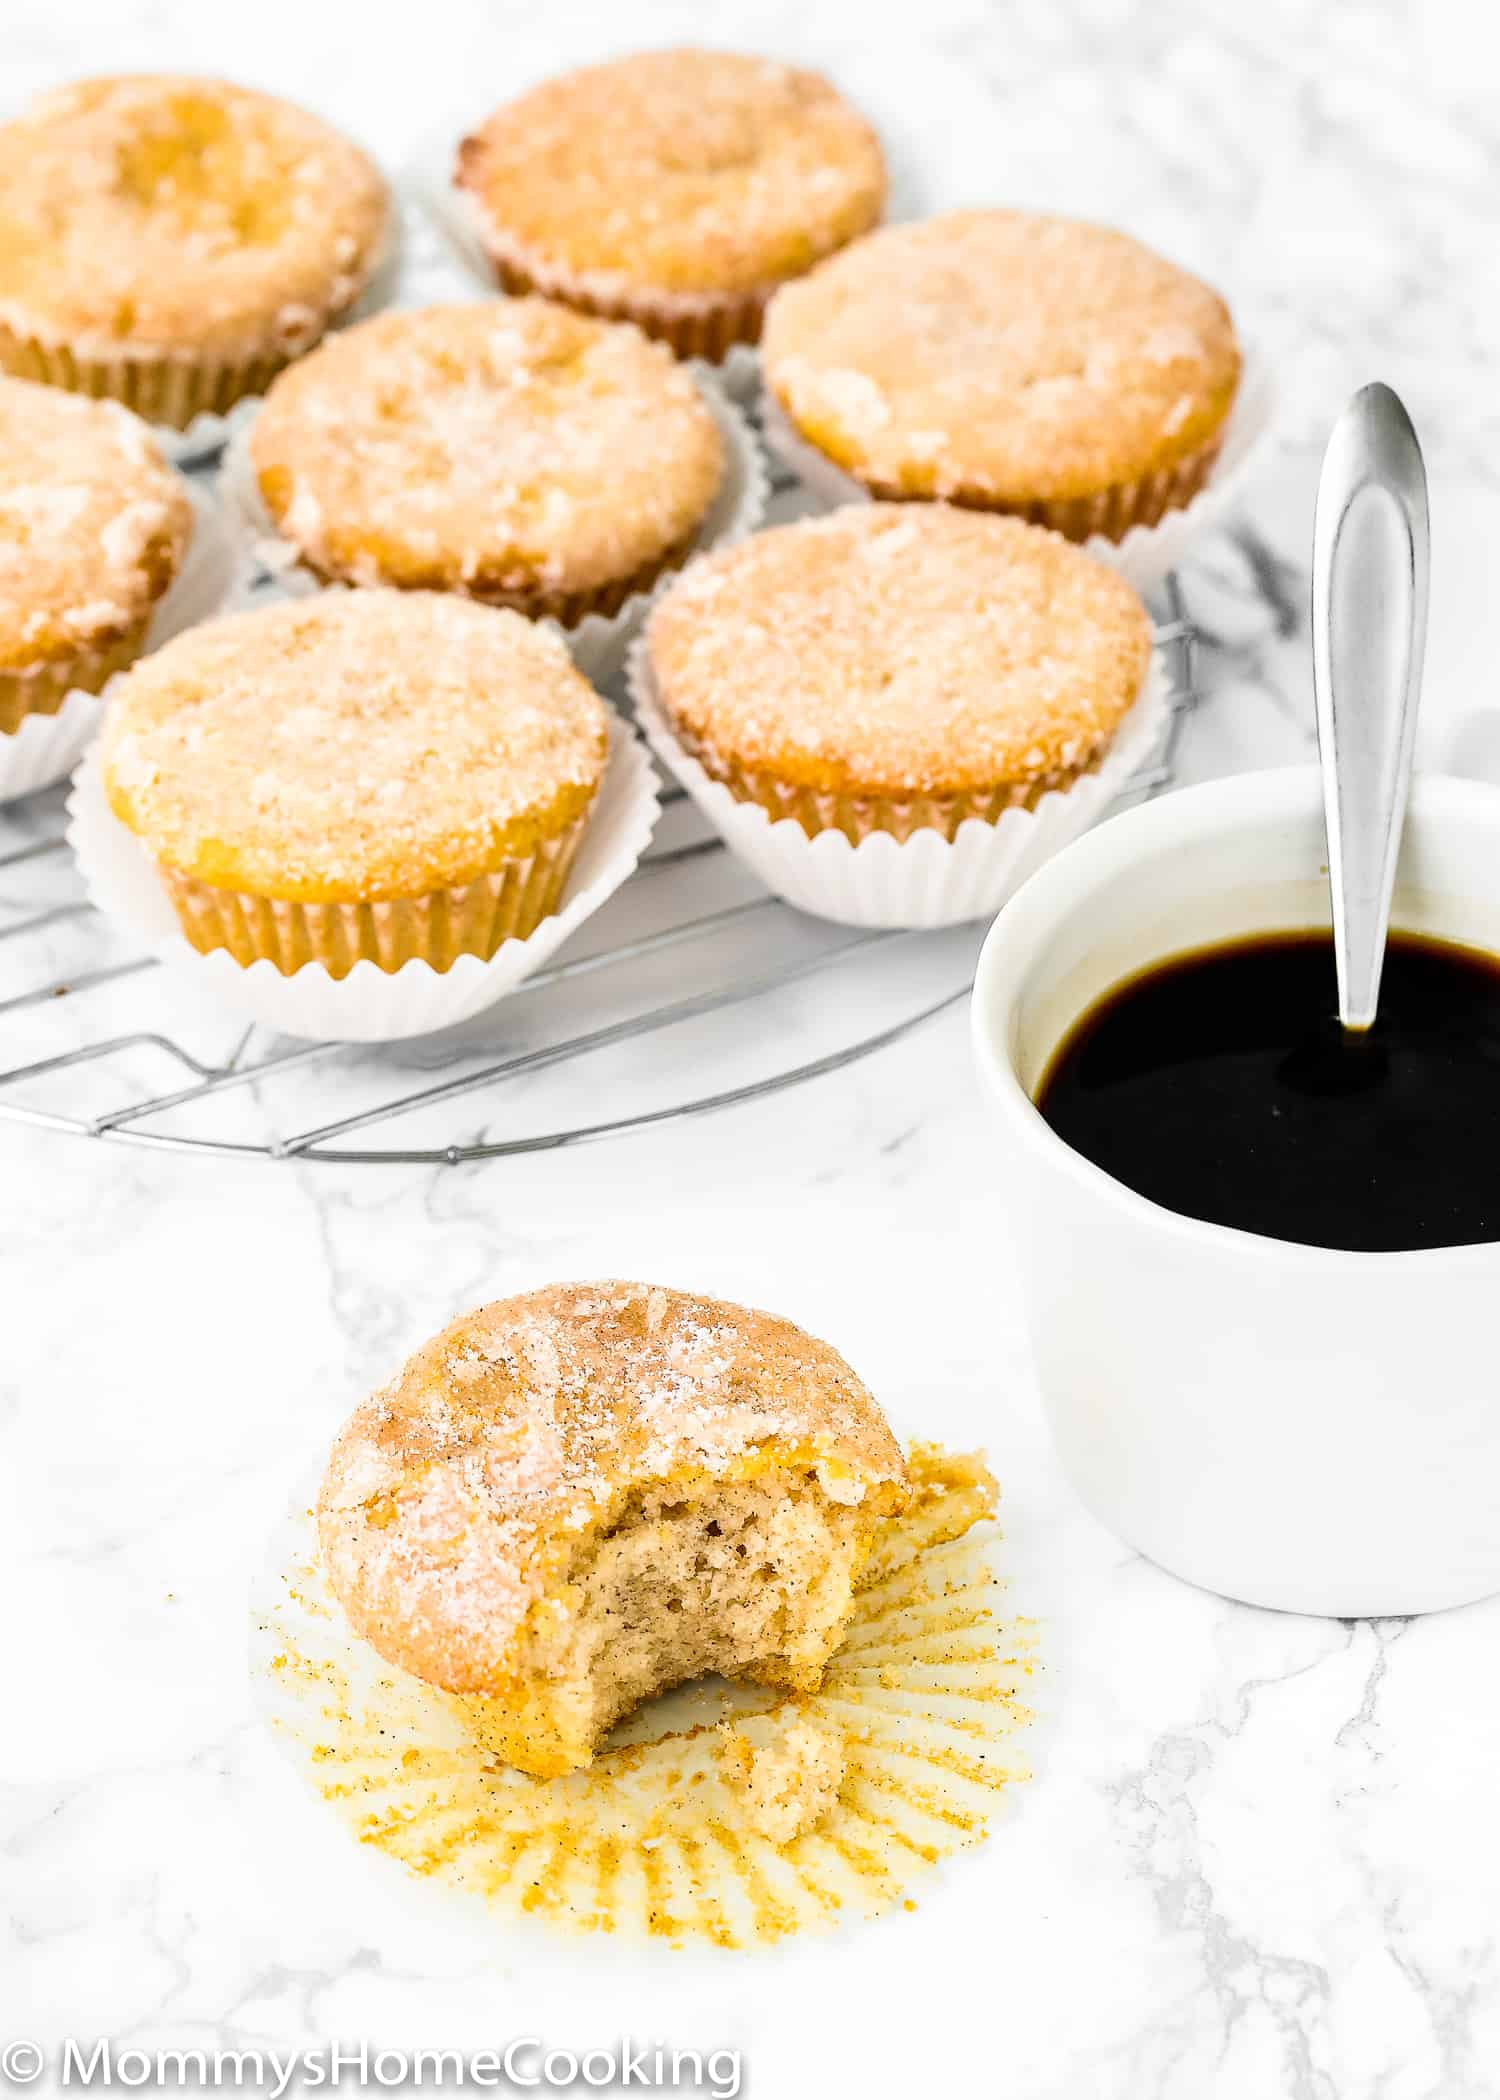 These Eggless Sugar Donut Muffins are soft and fluffy and moist! They're super easy to make and bake up in no time. Perfect for breakfast, brunch, snack, or even dessert. https://mommyshomecooking.com